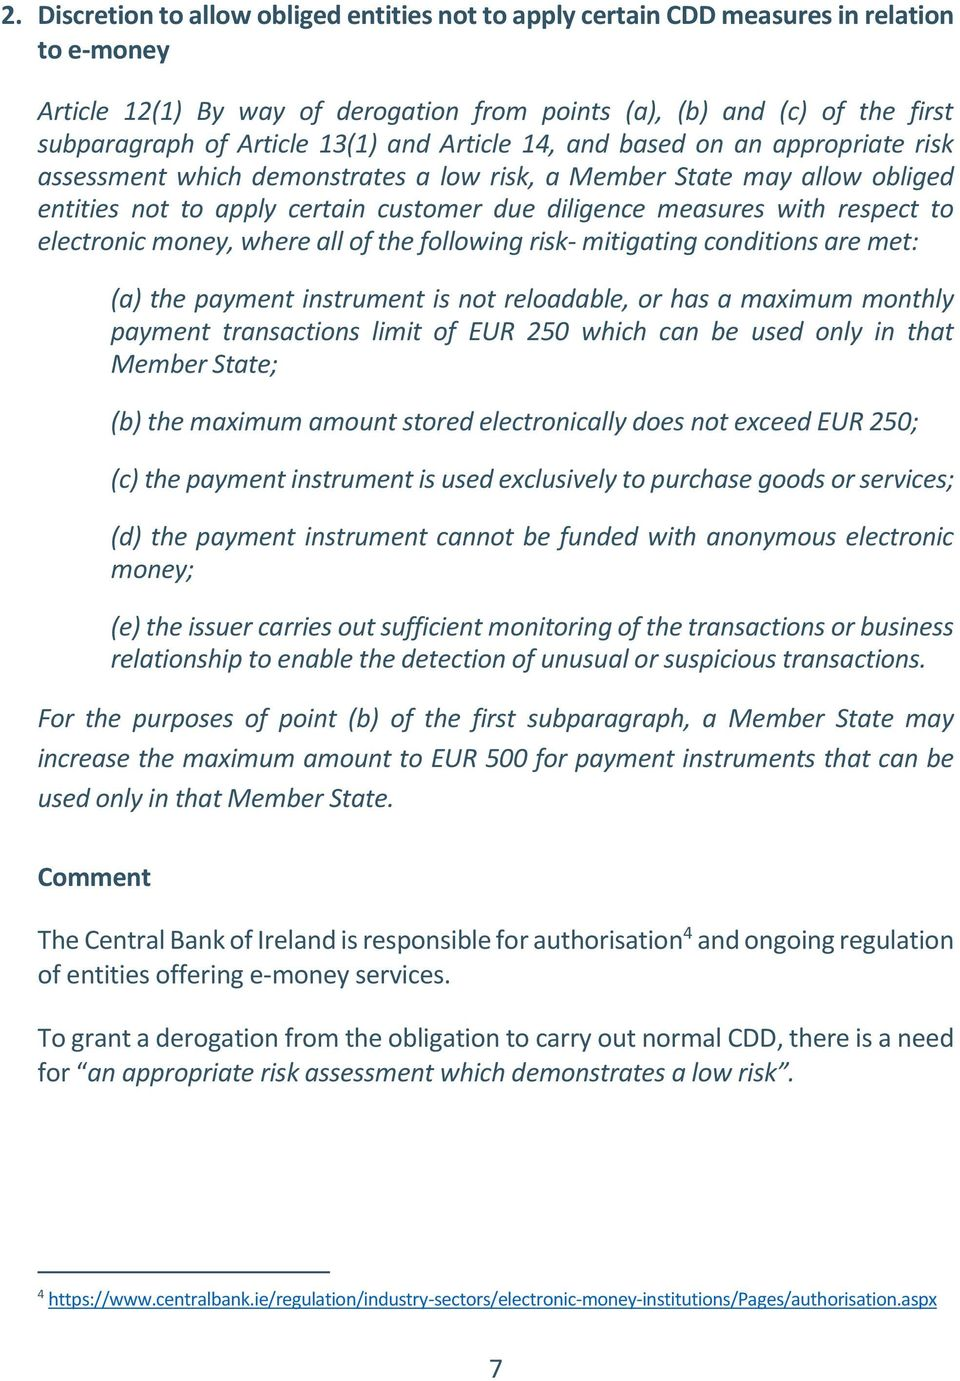 respect to electronic money, where all of the following risk- mitigating conditions are met: (a) the payment instrument is not reloadable, or has a maximum monthly payment transactions limit of EUR